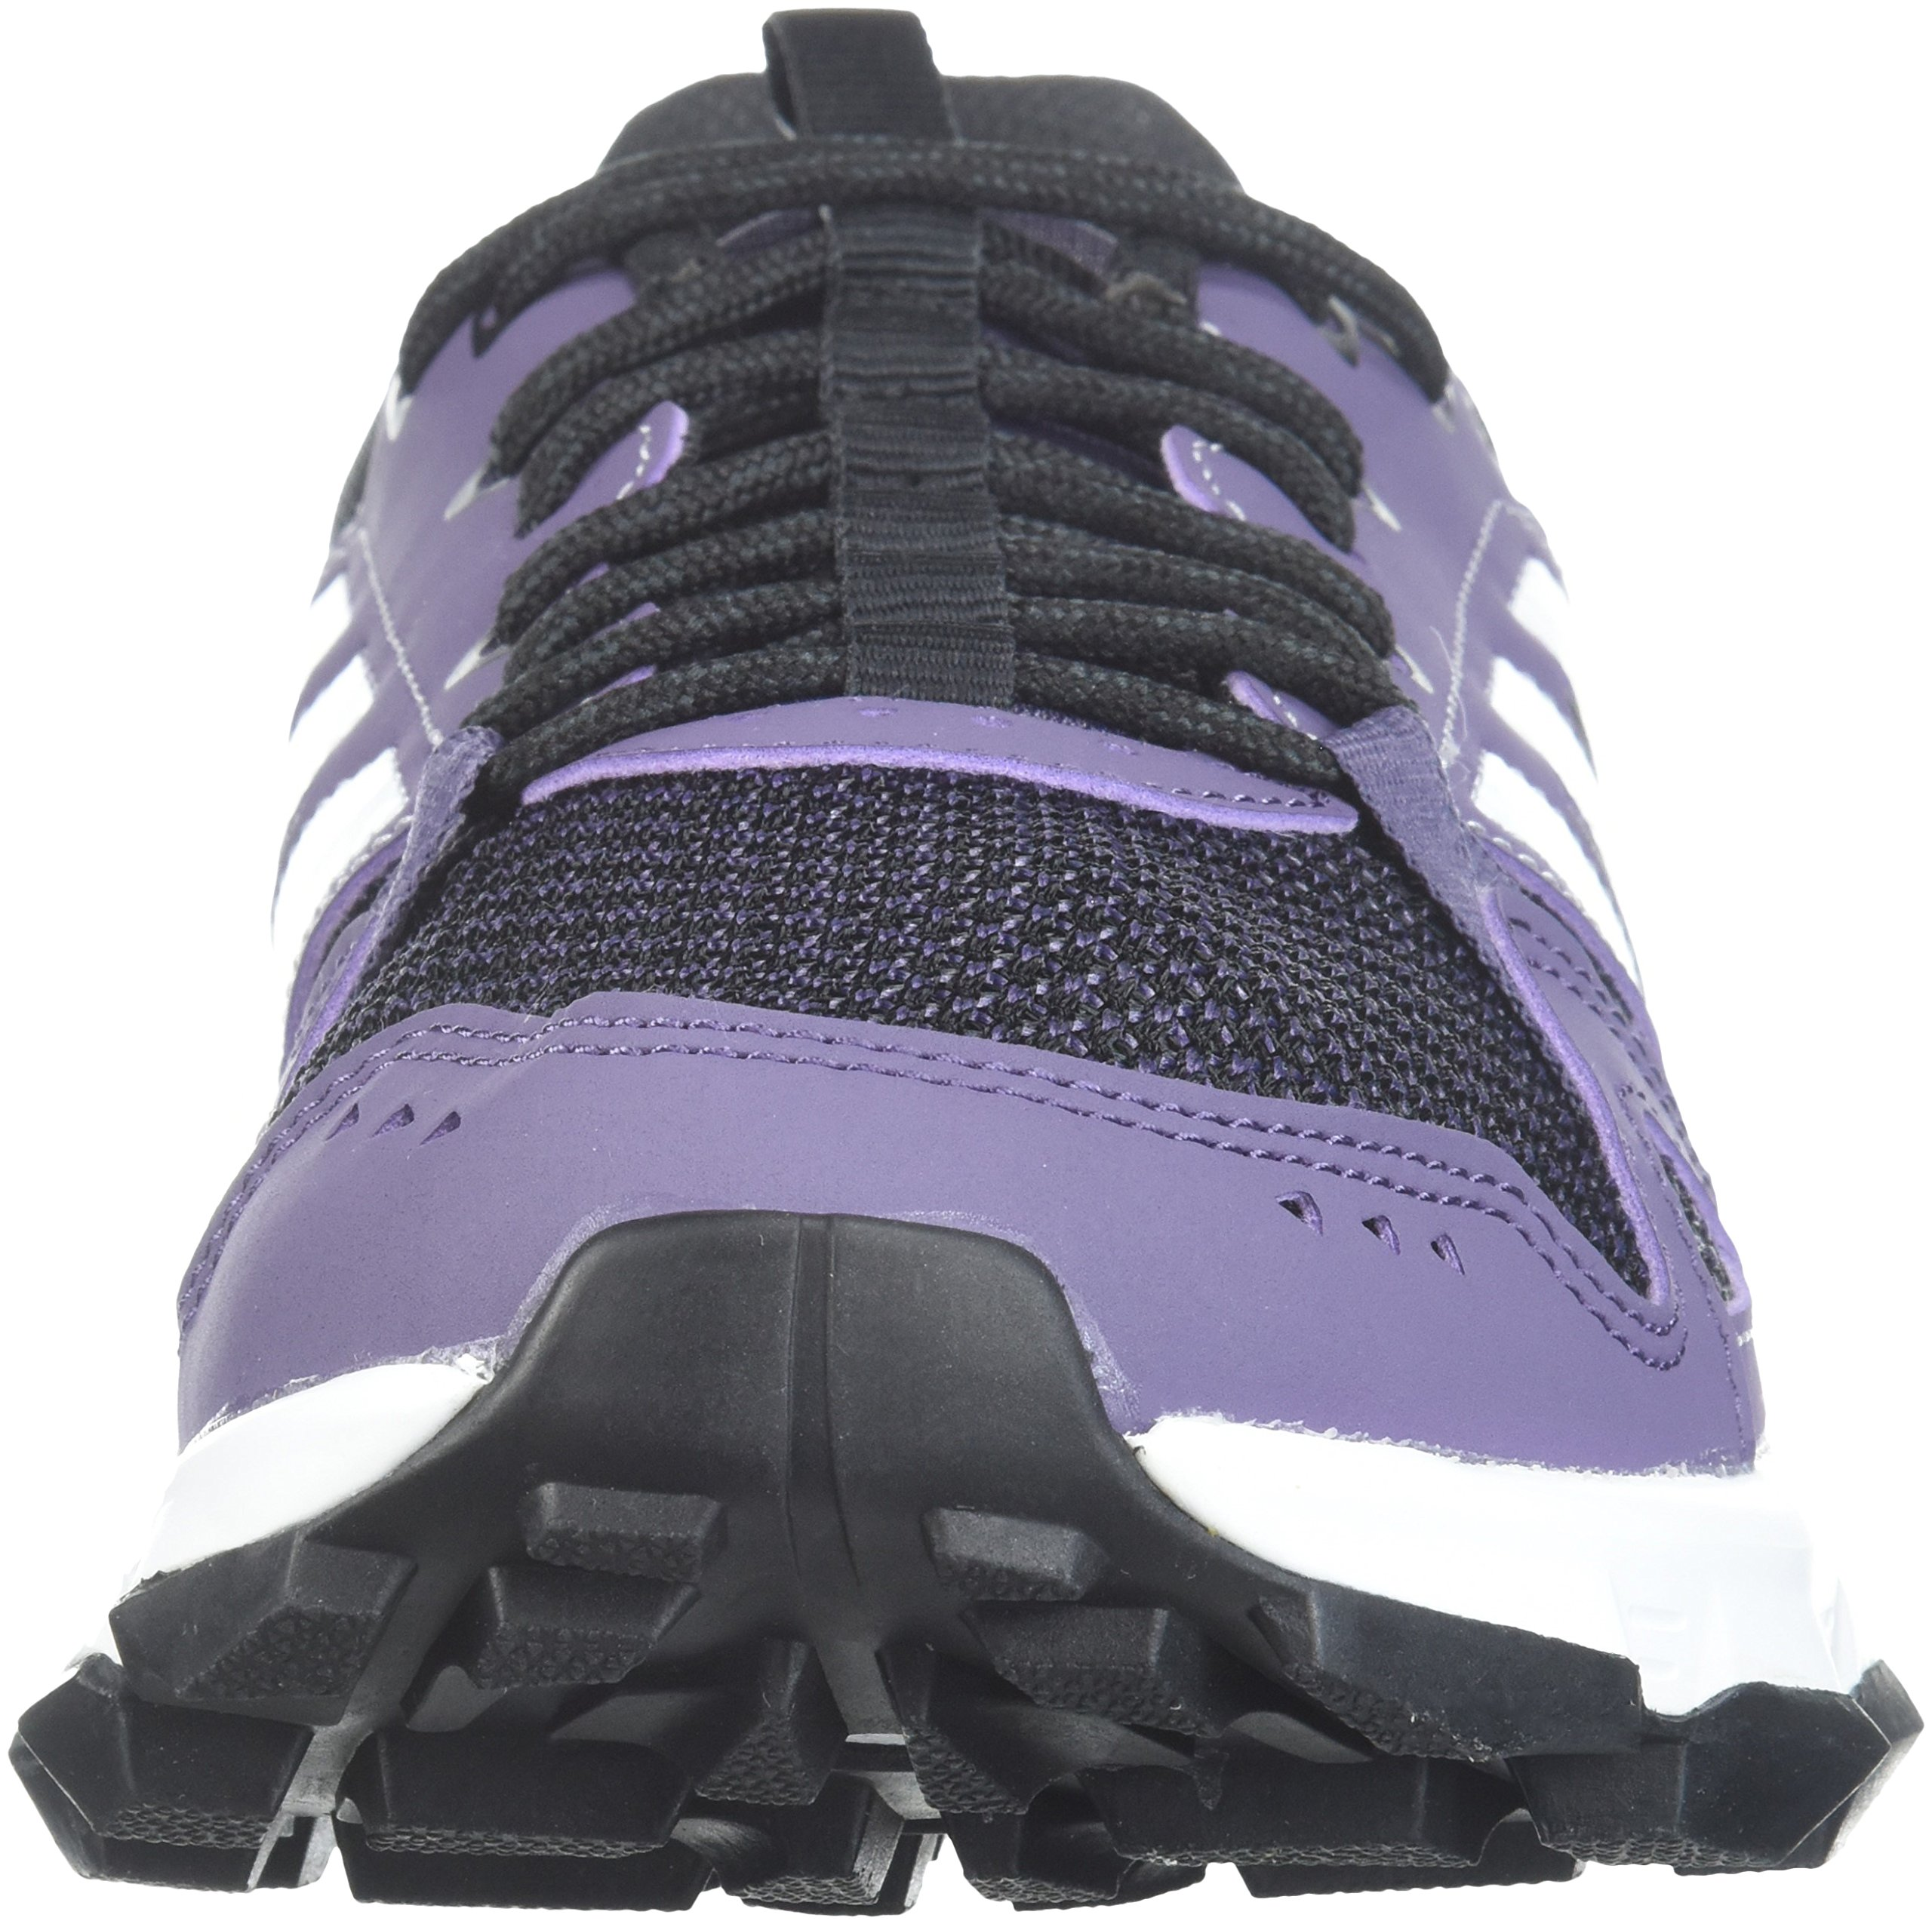 adidas Women's Rockadia w Trail Running Shoe, Trace Purple/White/Core Black, 7 M US by adidas (Image #4)